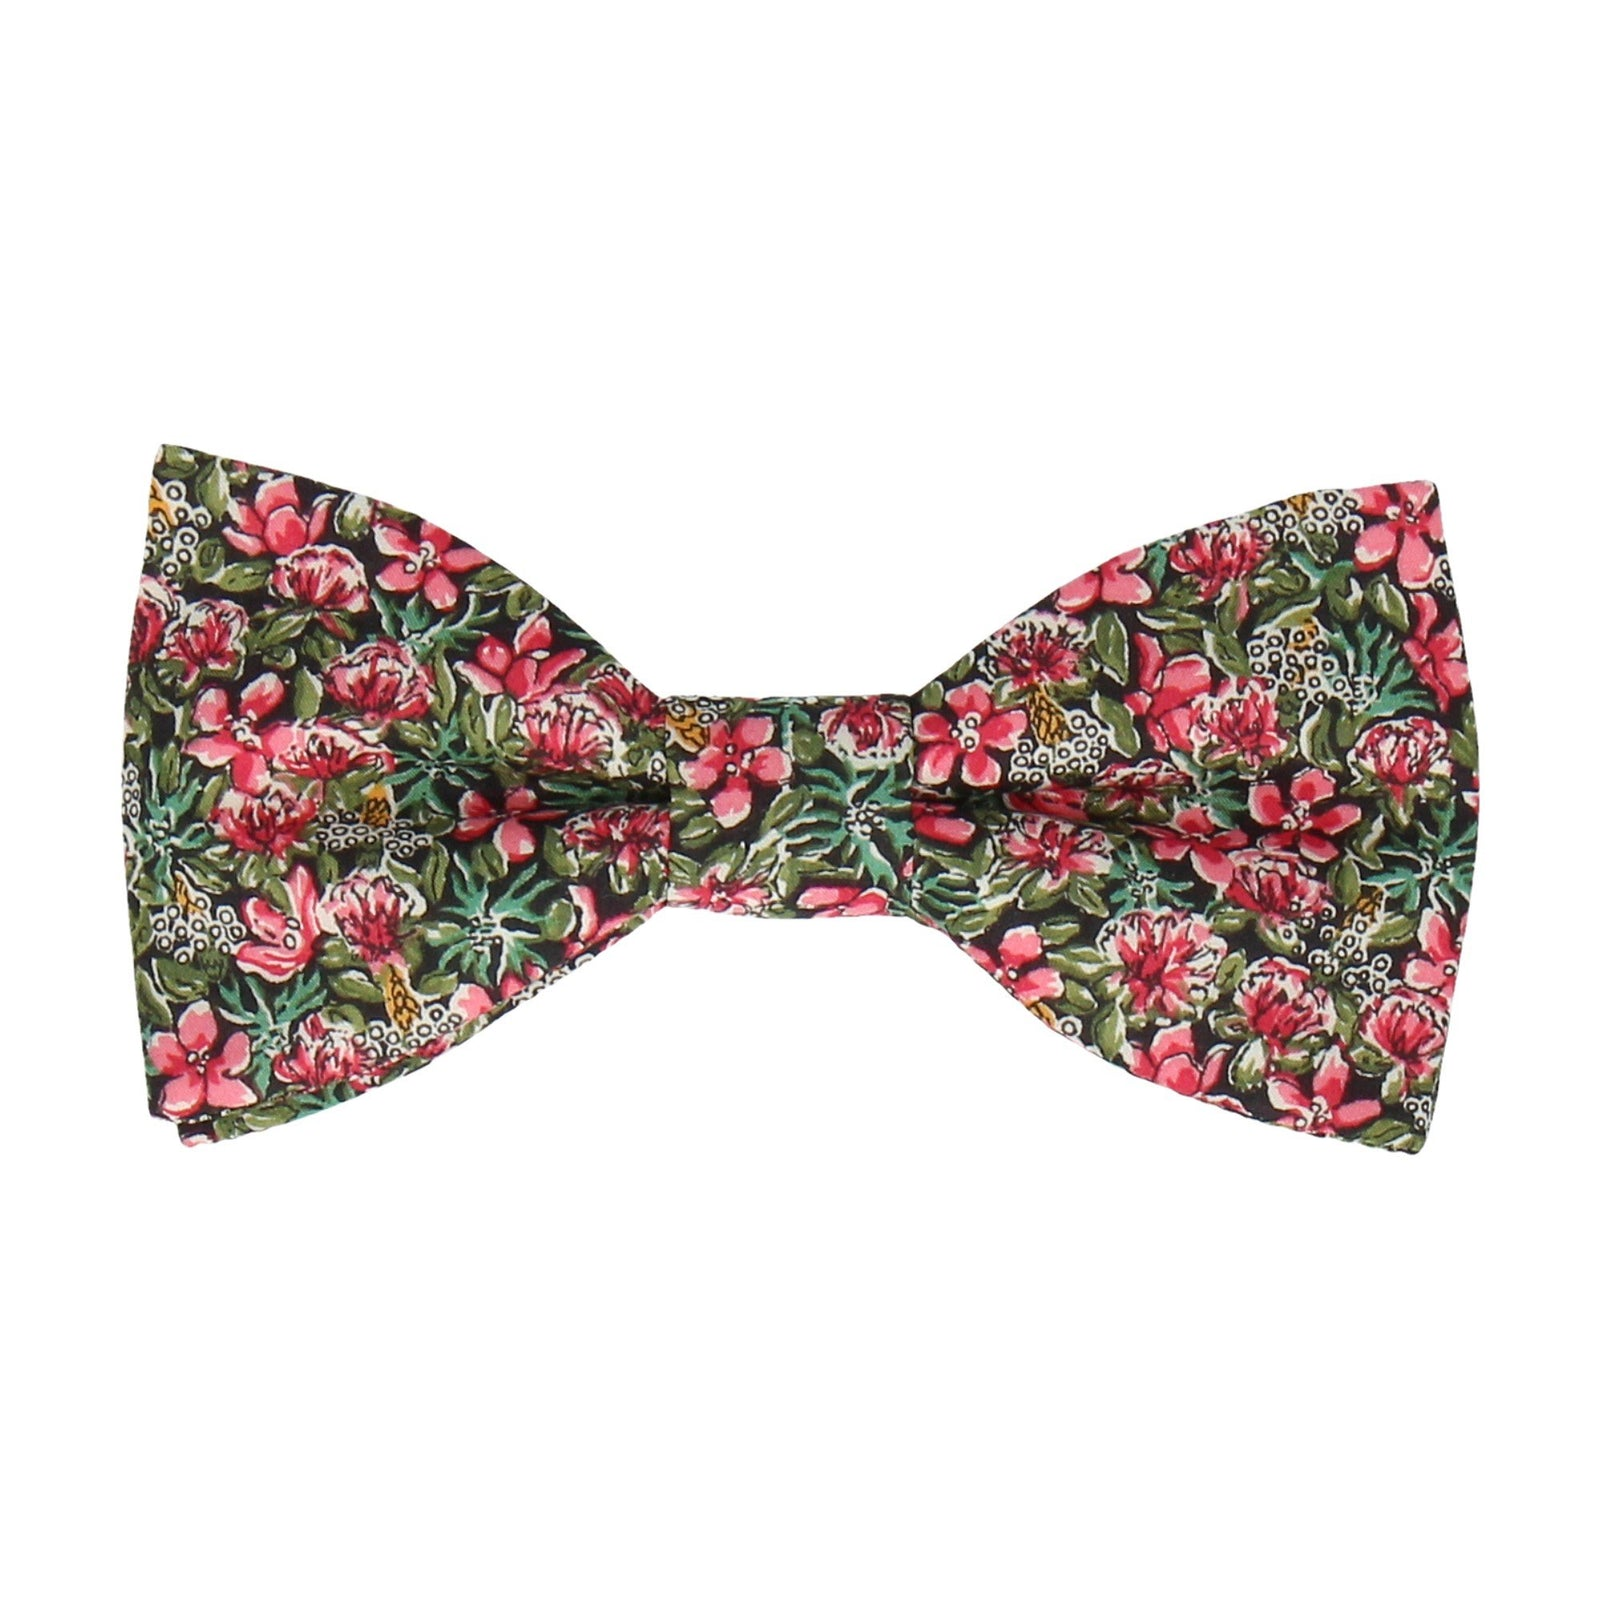 Jungle Floral Pink Ragged Robin Liberty Bow Tie